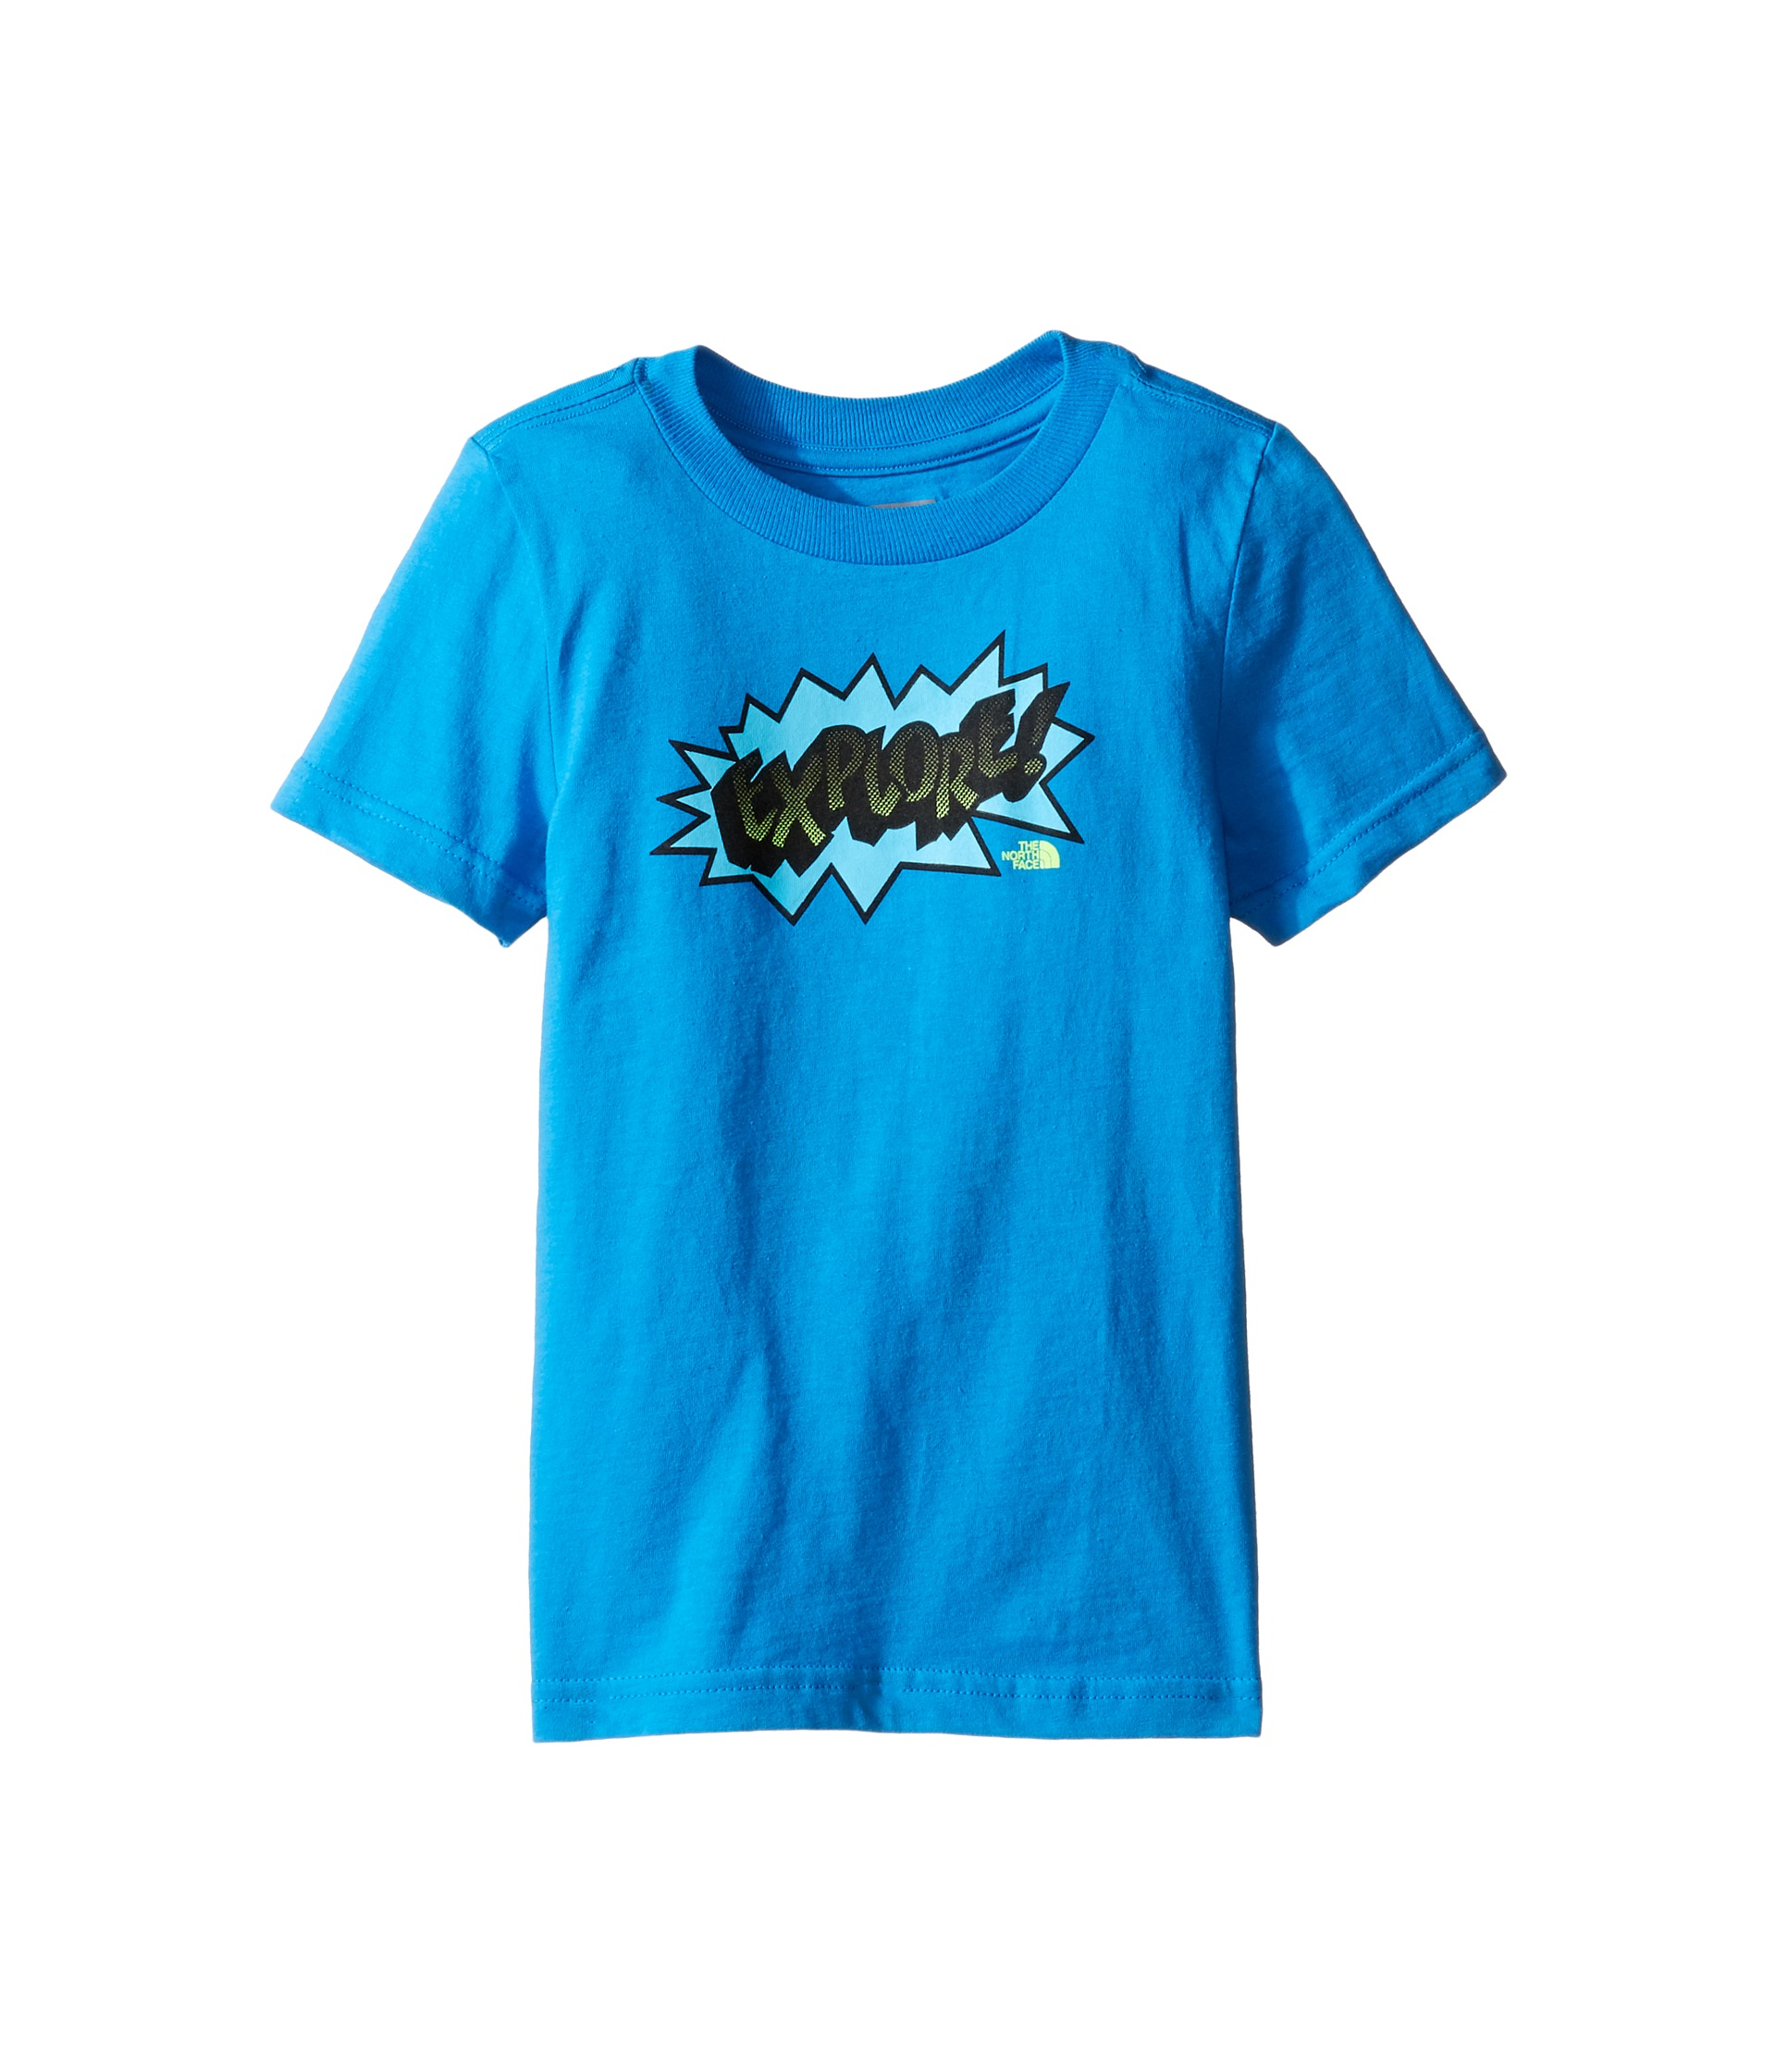 The north face kids short sleeve graphic tee toddler at for Graphic t shirts for kids